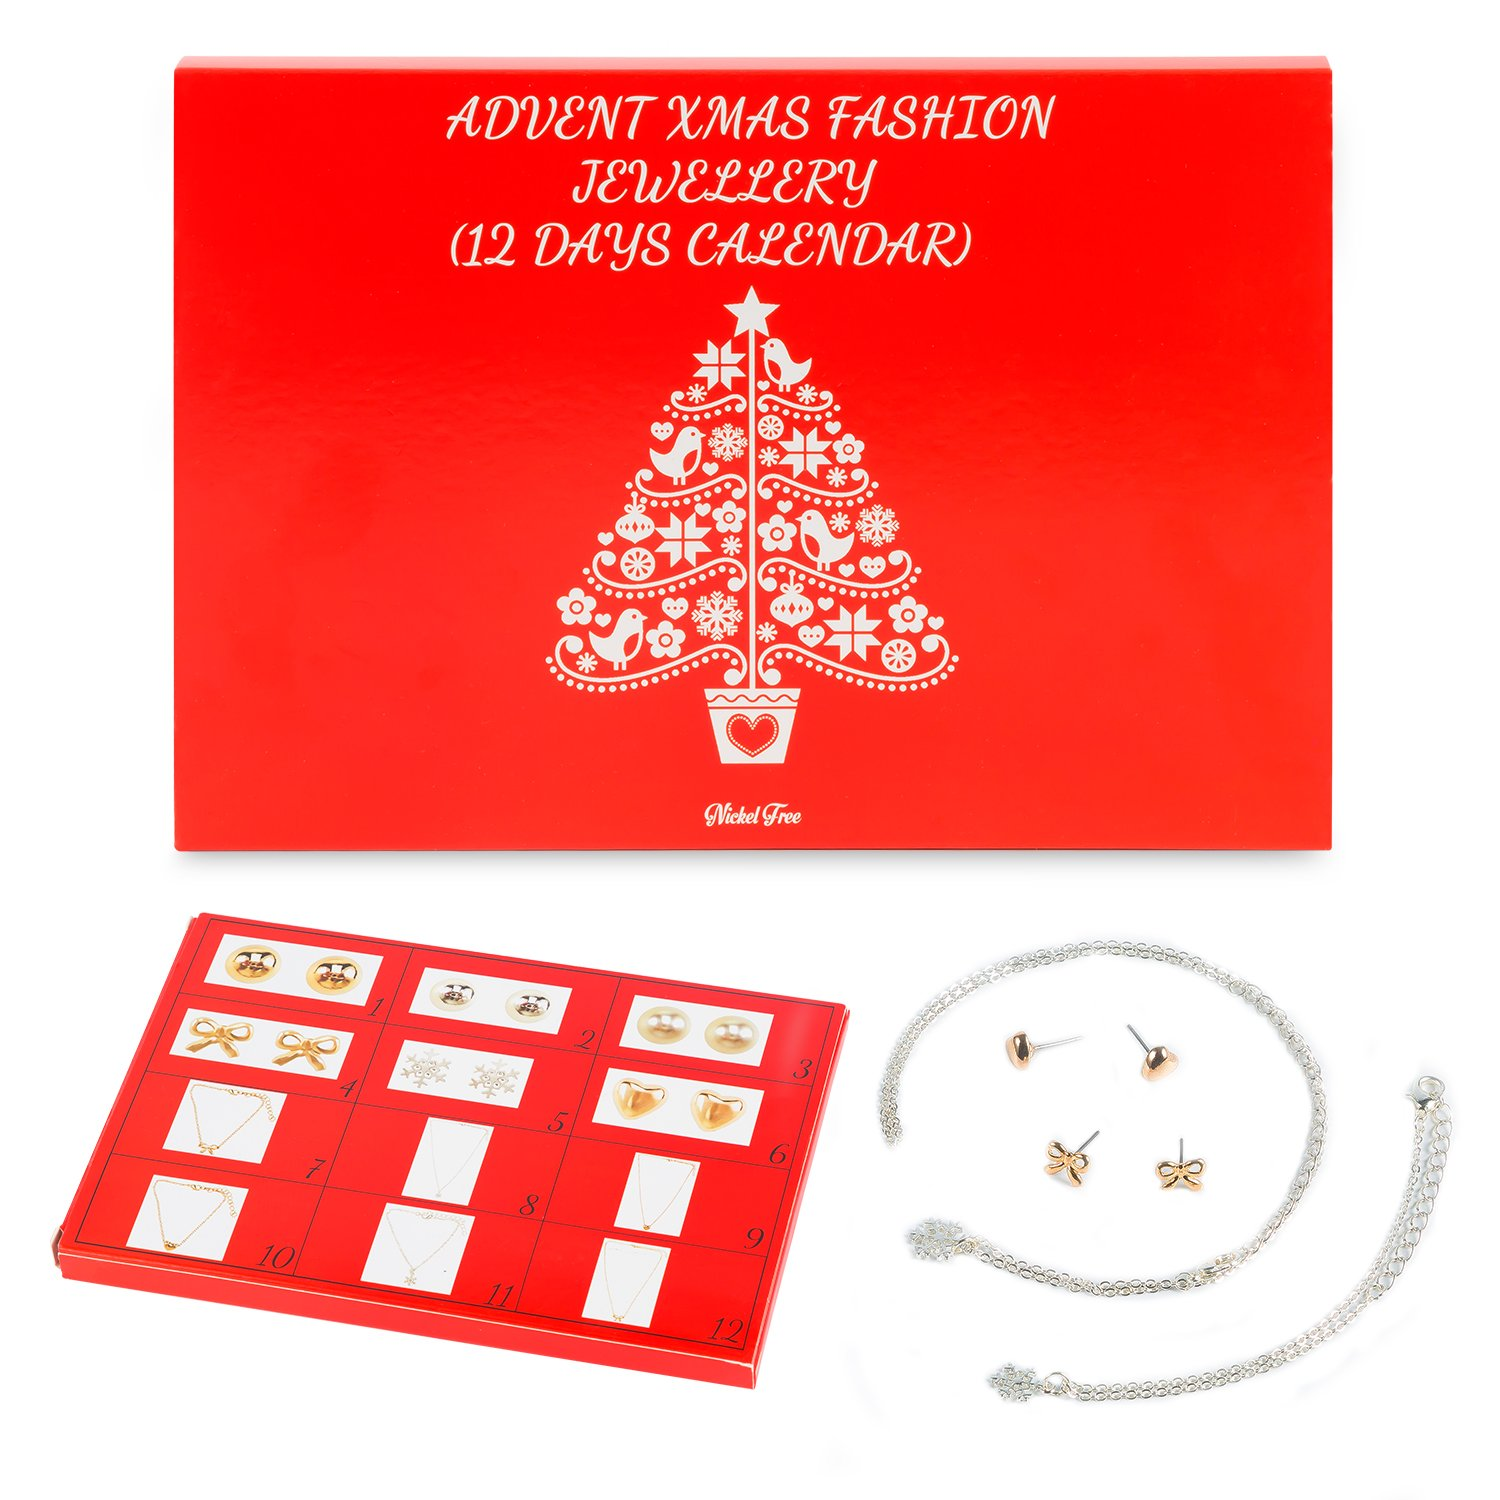 12 Day Advent Calendar for Christmas with Fashion Jewellery